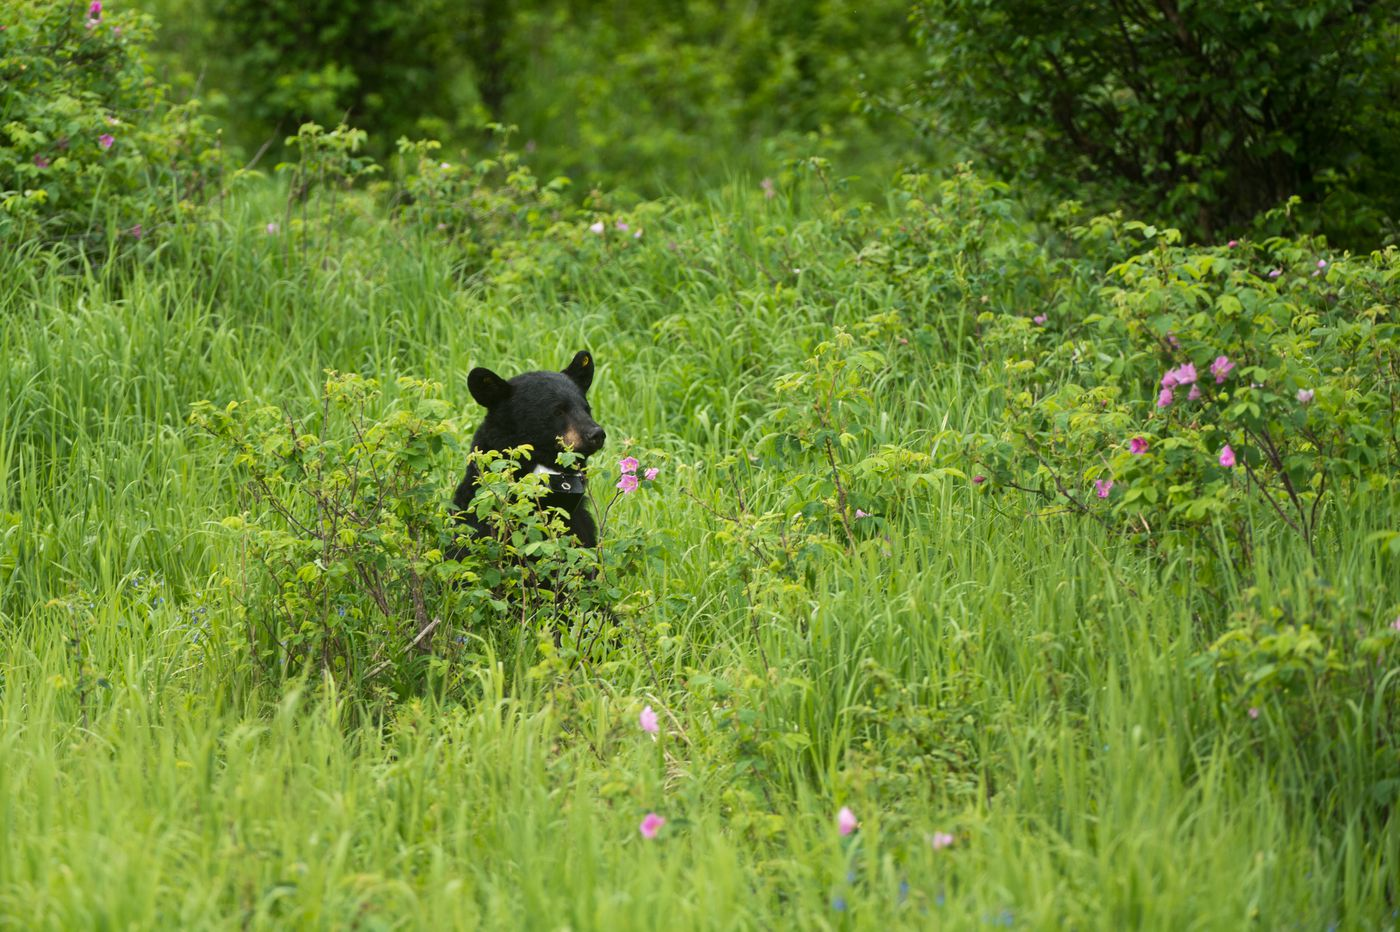 A black bear passes through the Creek Course at Moose Run Golf Course this week. (Marc Lester / Alaska Dispatch News)